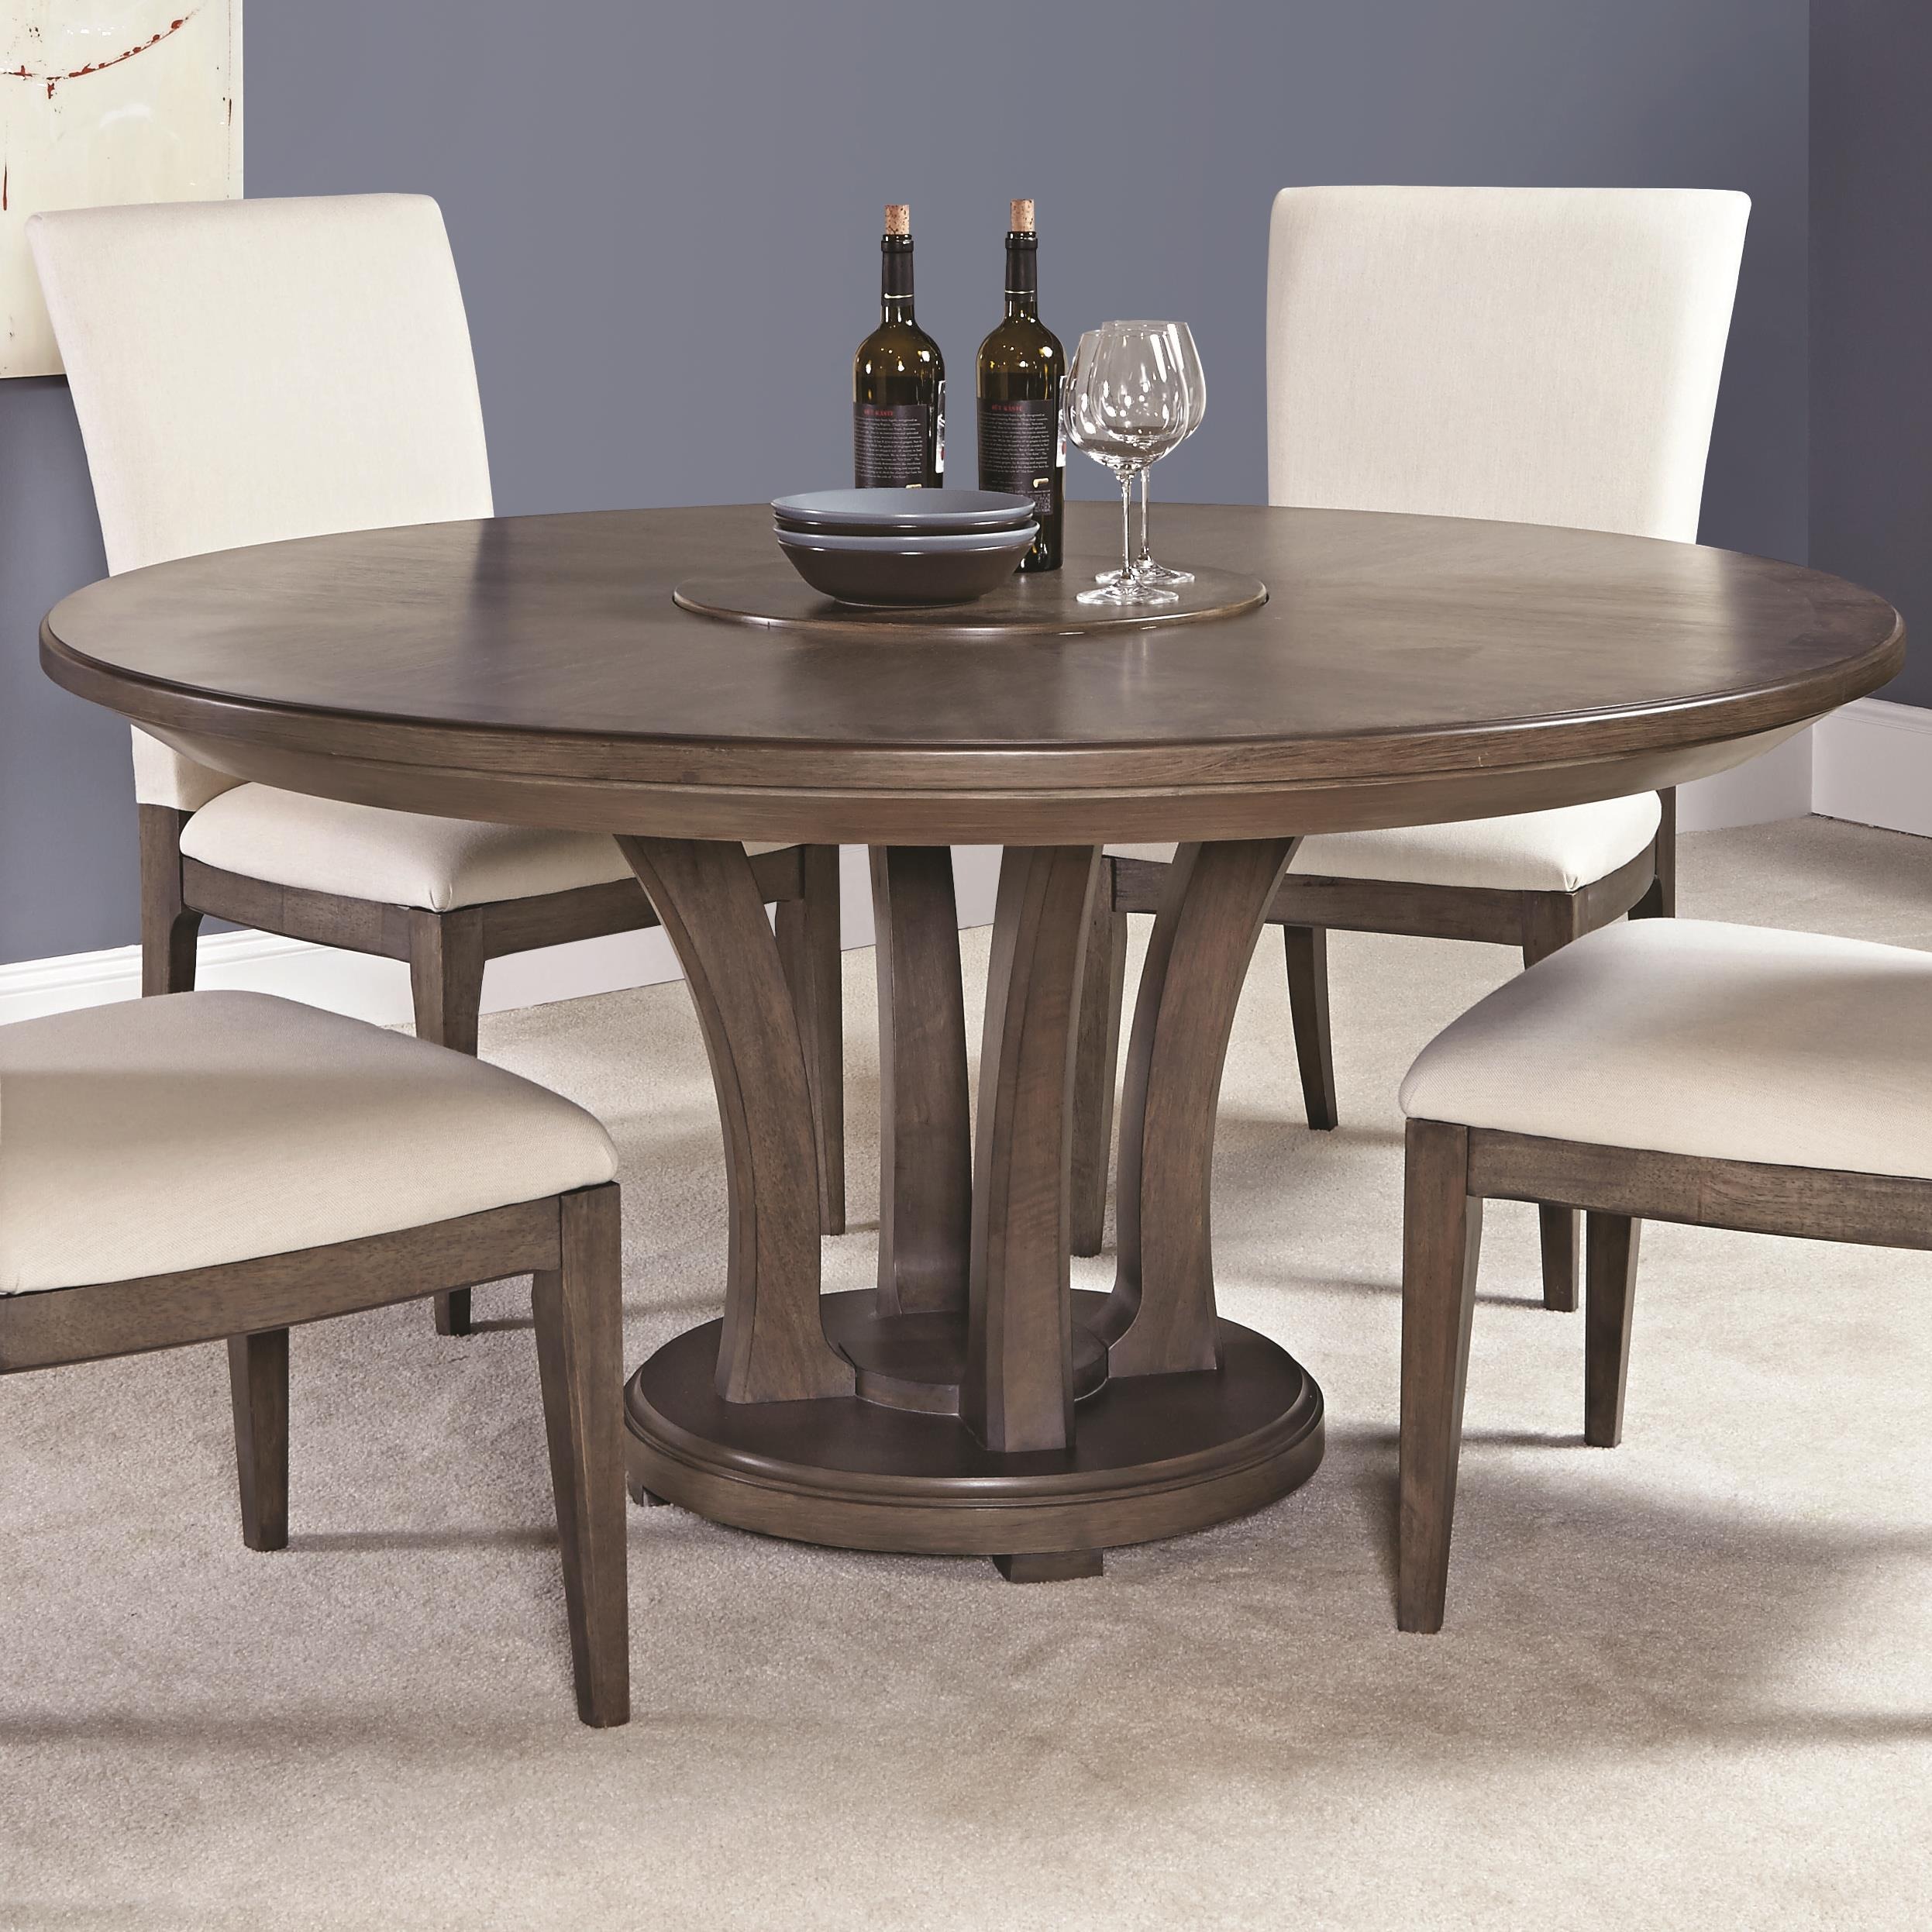 contemporary inch round dining table with trestle base by . contemporary inch round dining table with trestle base